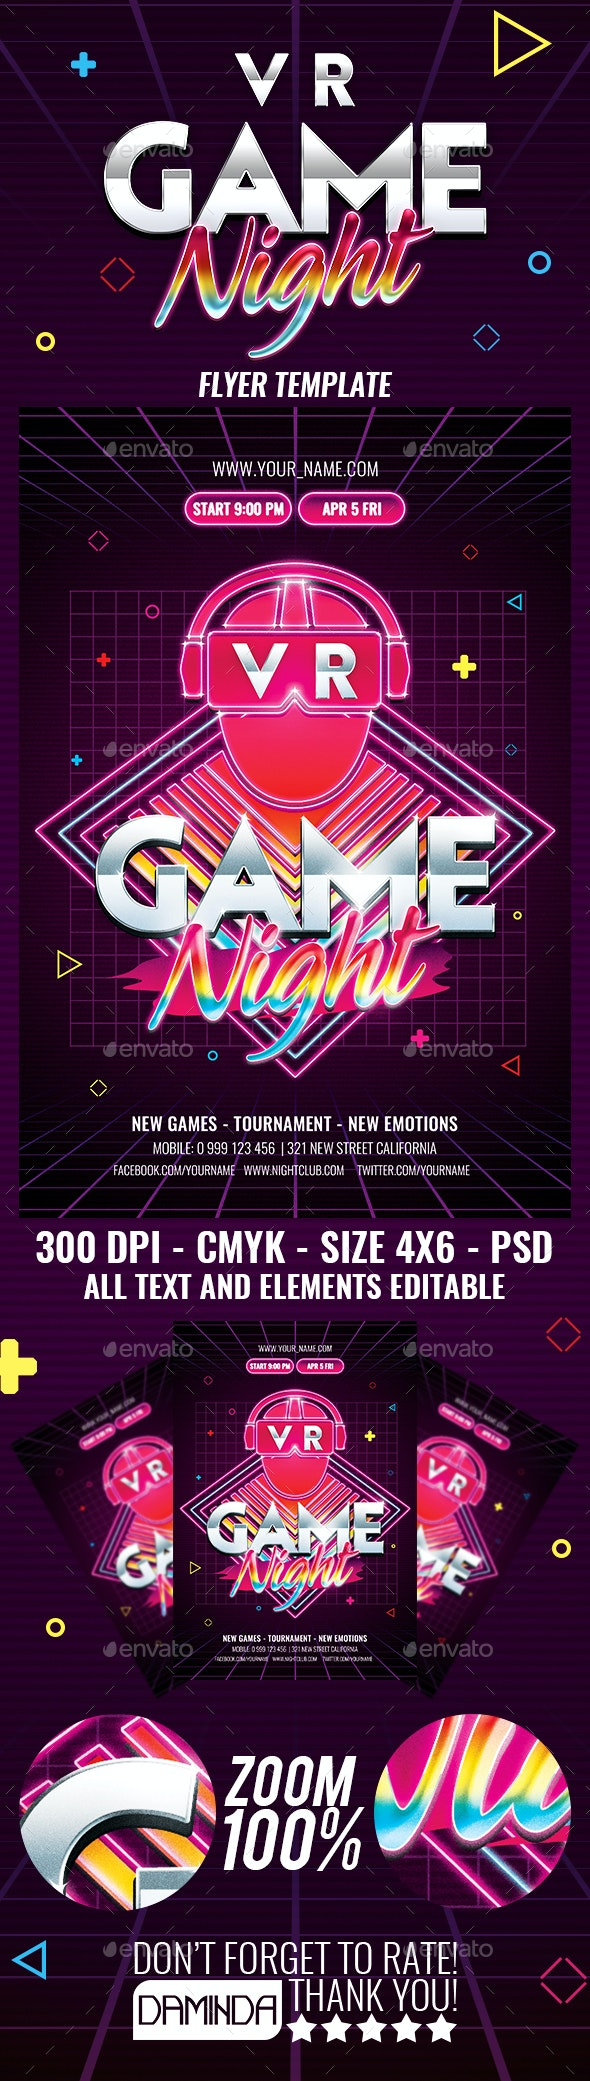 VR Game Night Flyer Template - Events Flyers